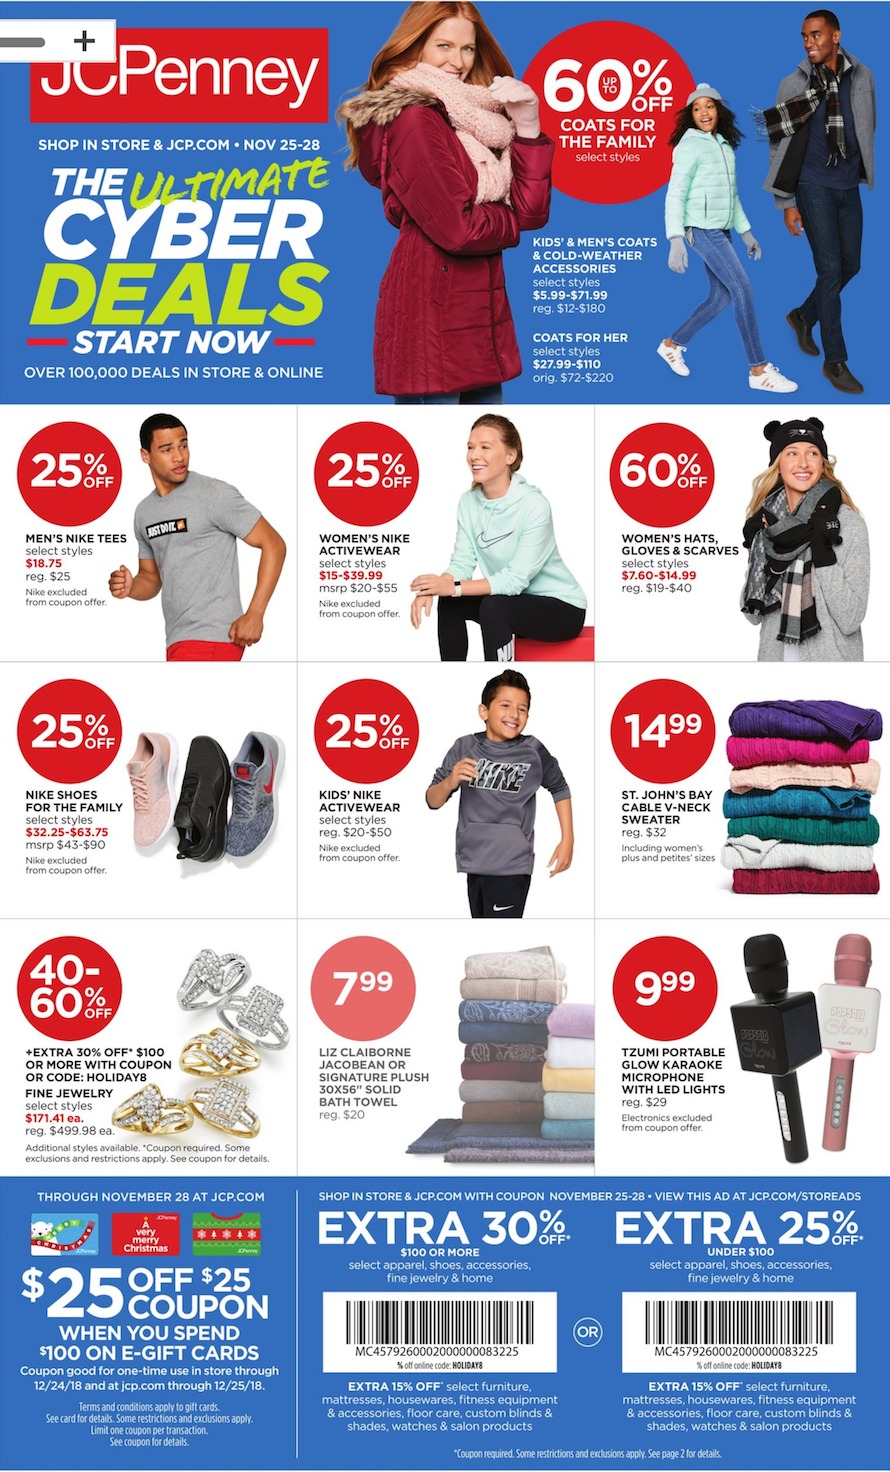 JCPenney Cyber Monday 2019 Ad, Deals and Sales